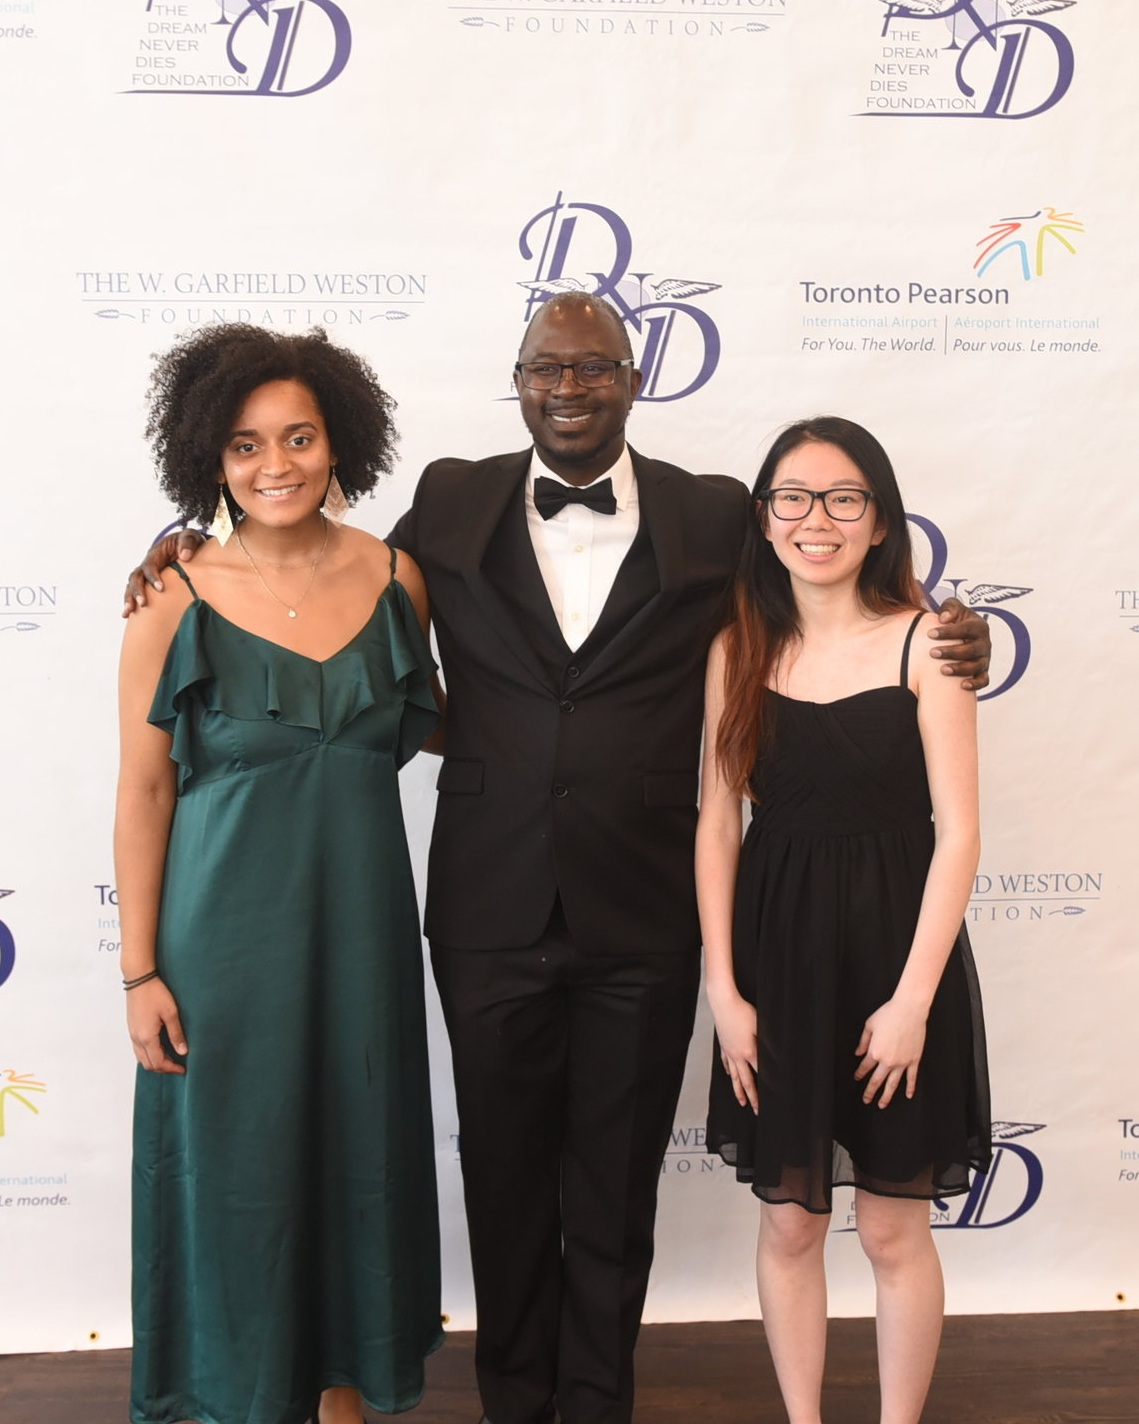 Dr. Ransford Morel-Hyman Jr. presented scholarships to Chantal Phillips (l) & Kristin Wu